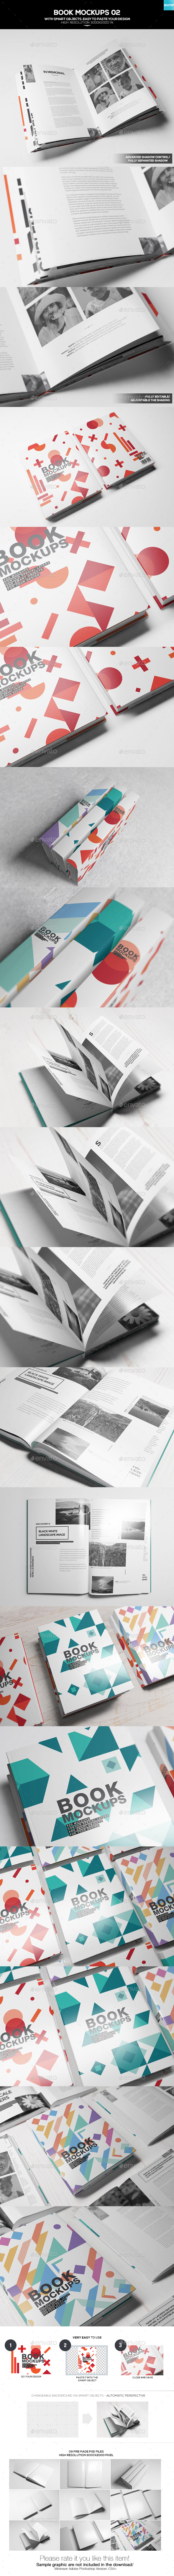 Book Mockups 02 - Books Print